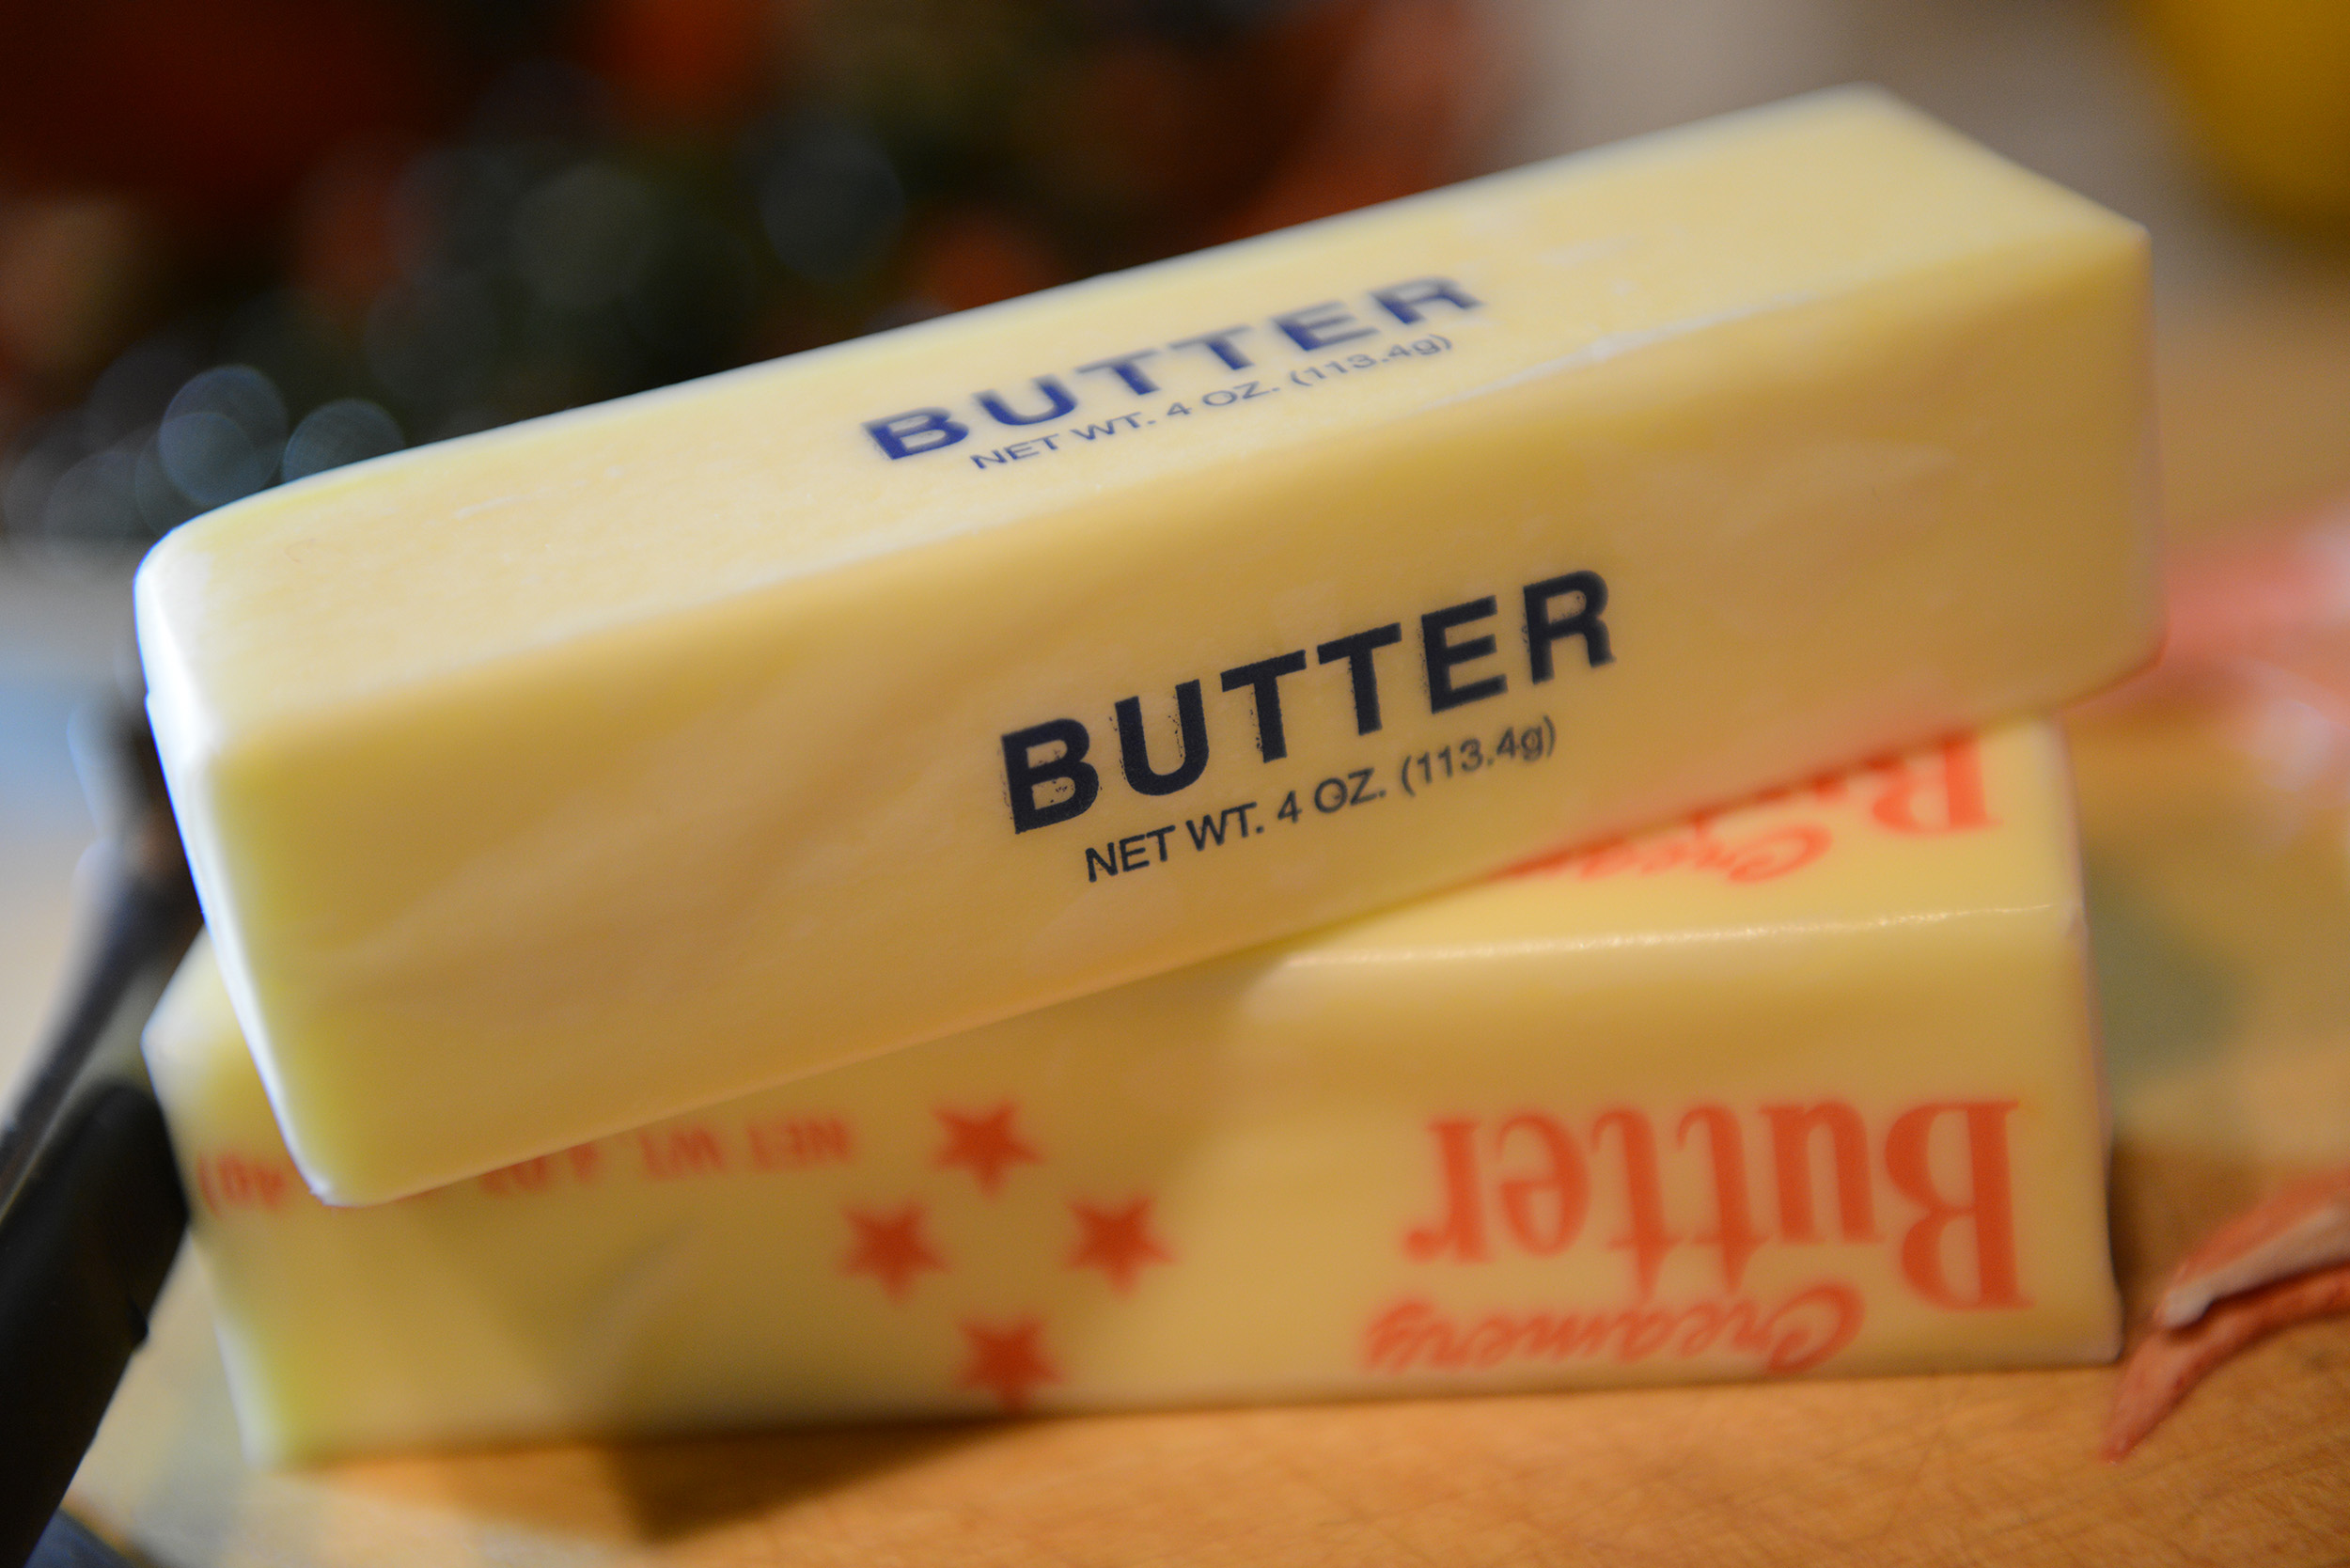 Although natural, butter is still unhealthy